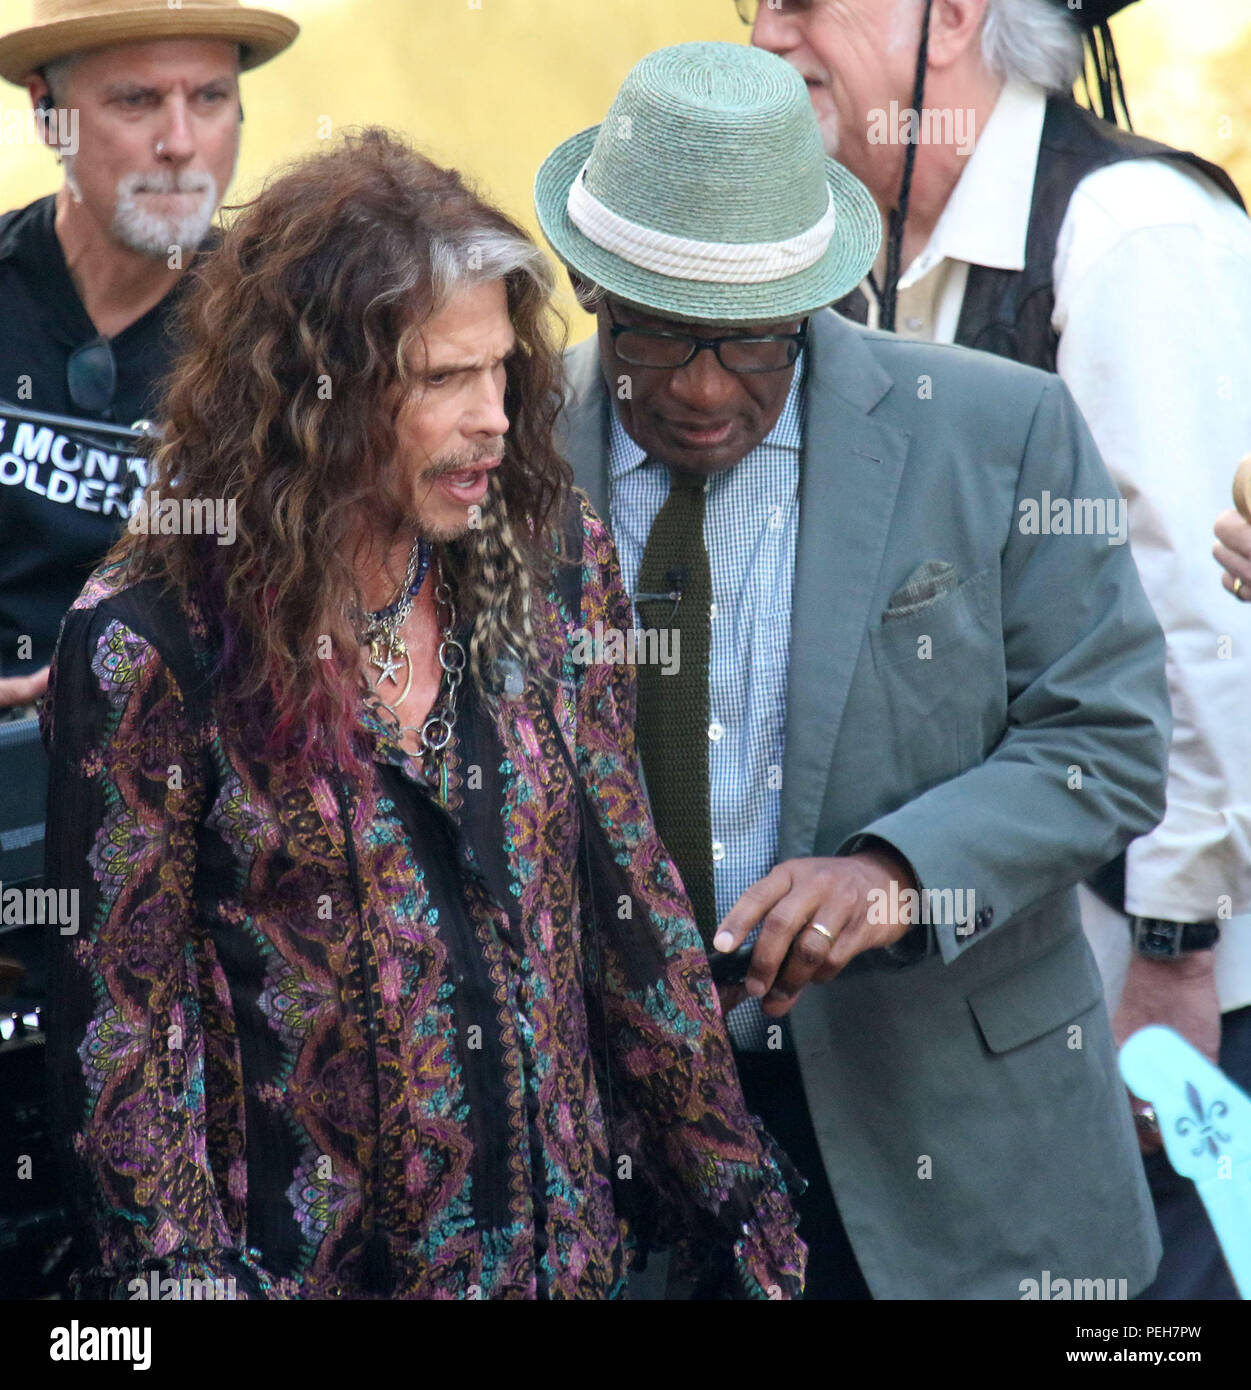 New York City, New York, USA. 15th Aug, 2018. Musician/singer STEVEN TYLER from AEROSMITH and 'Today' show host AL ROKER look at a photo on the 'Today' show held at Rockefeller Center. Credit: Nancy Kaszerman/ZUMA Wire/Alamy Live News - Stock Image